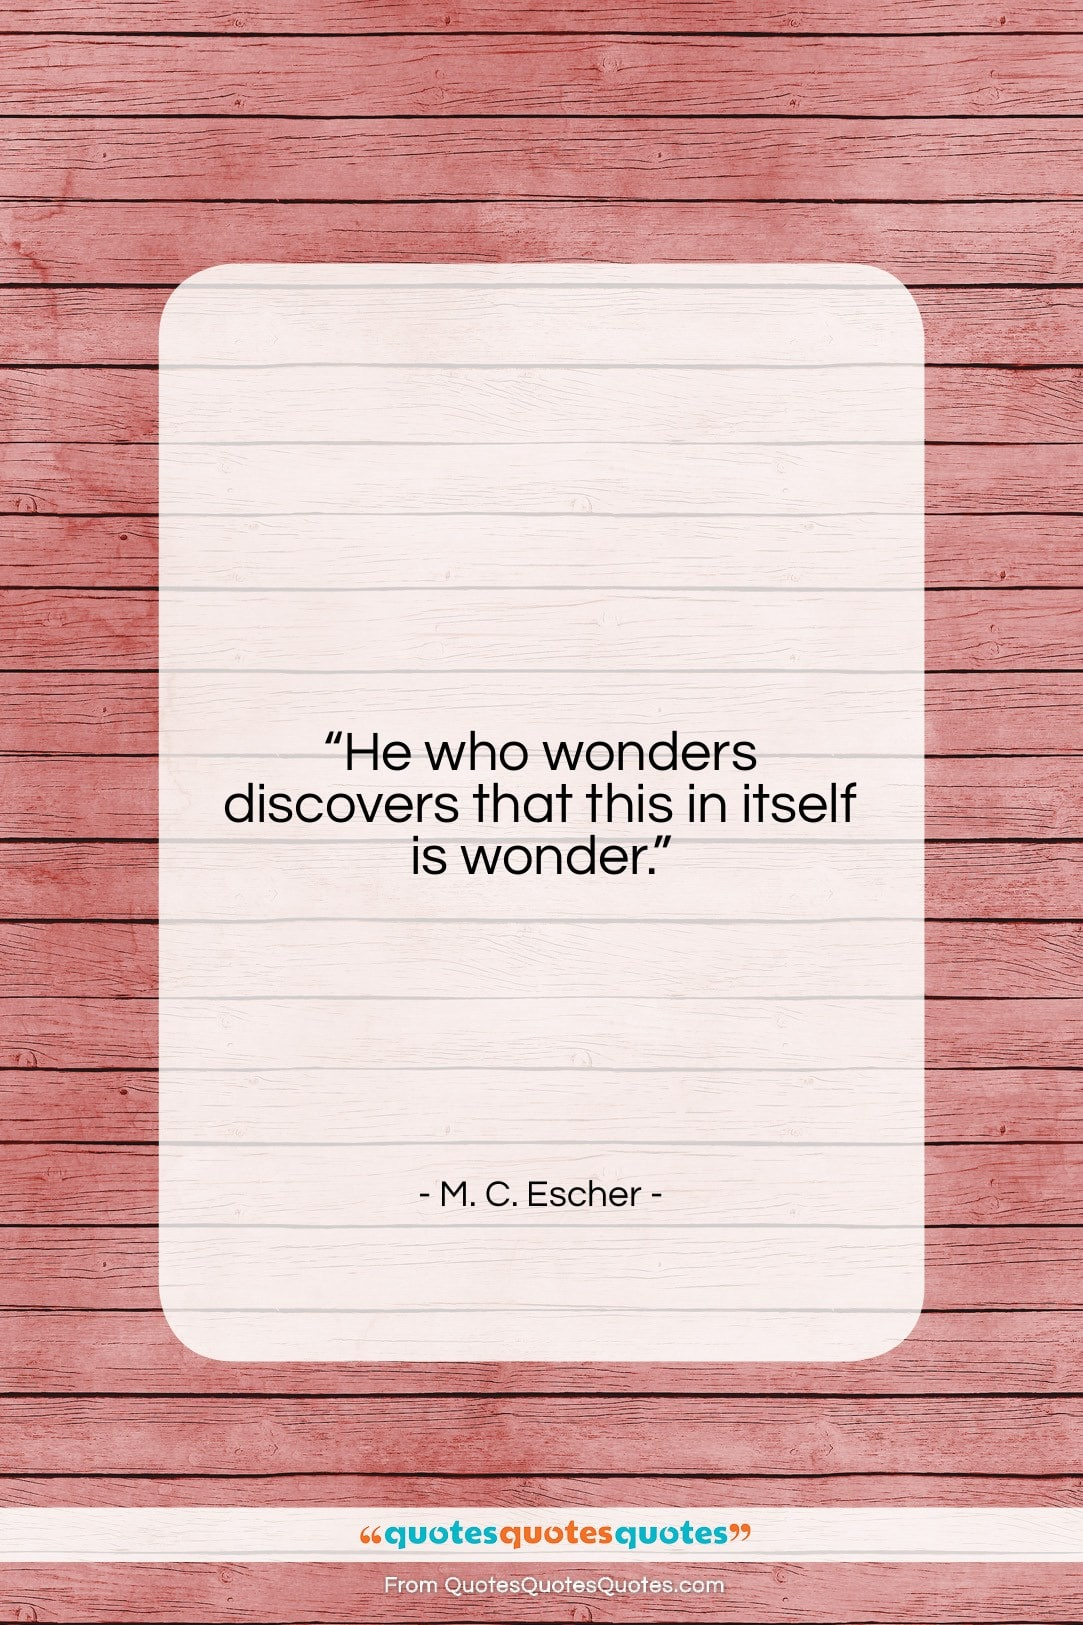 """M. C. Escher quote: """"He who wonders discovers that this in…""""- at QuotesQuotesQuotes.com"""